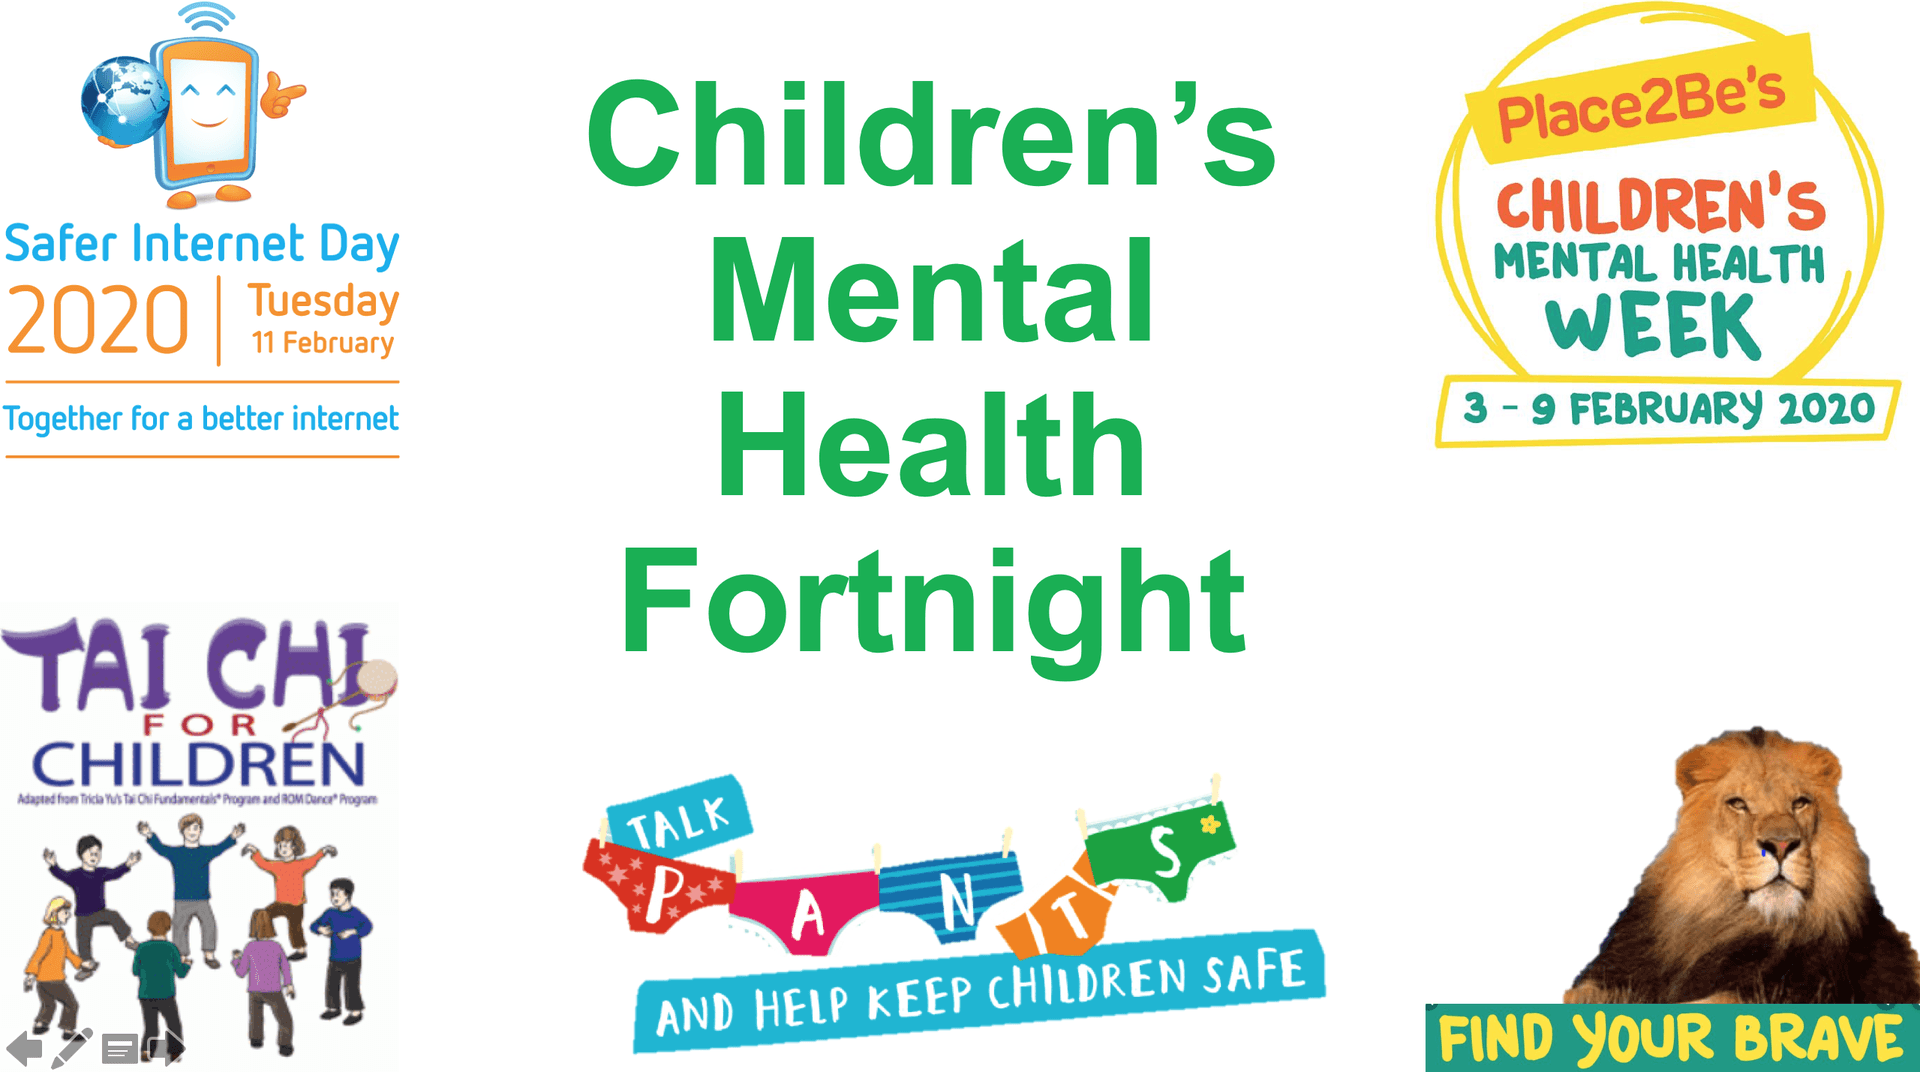 Children's Mental Health Fortnight